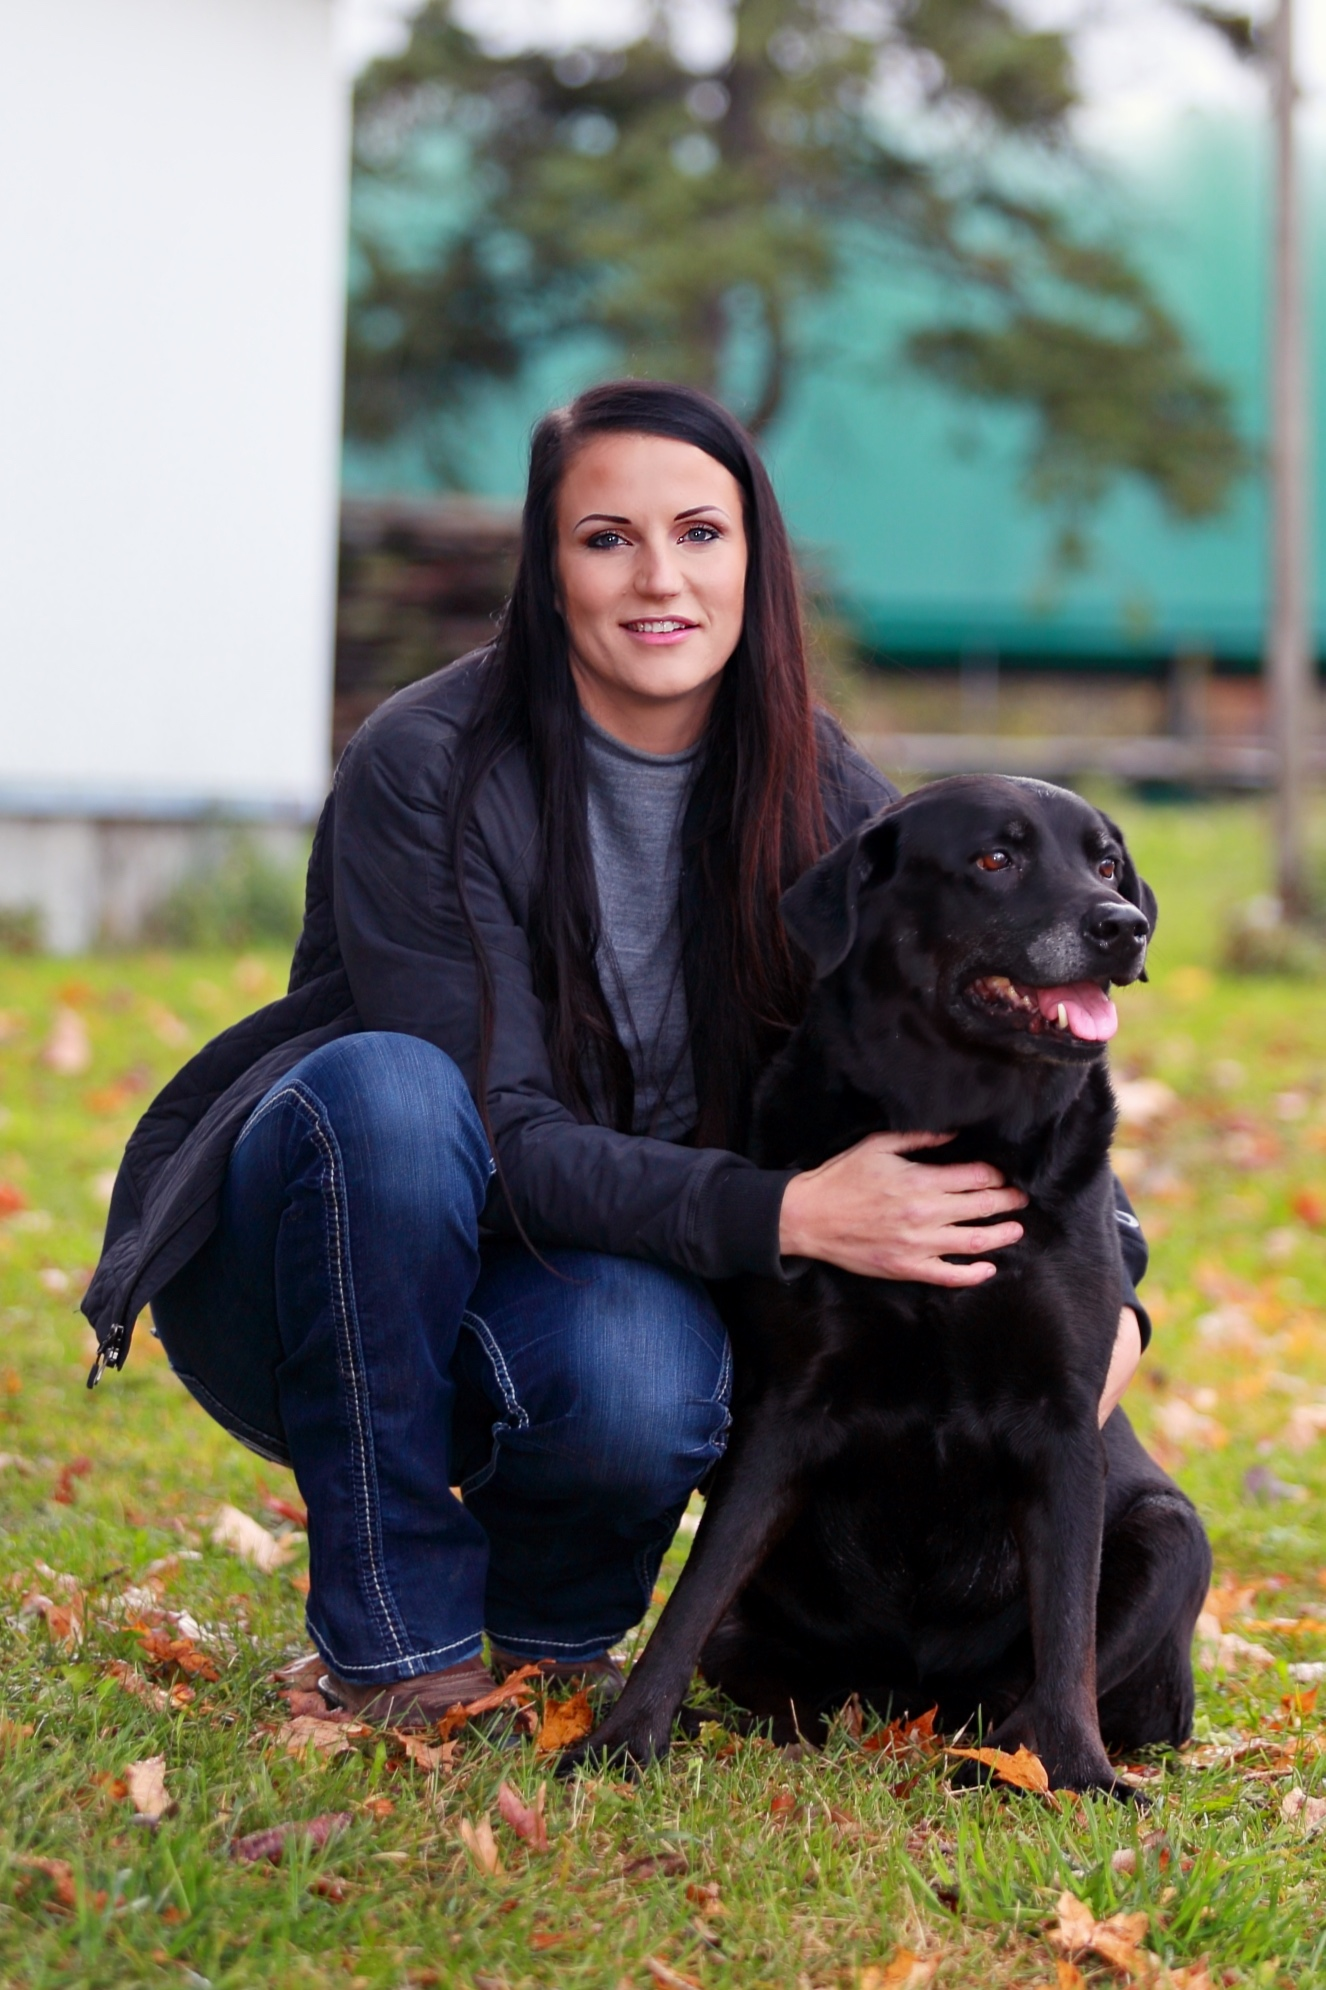 Lisa Vettoretti  RVT  (Registered Veterinary Technician),  CEMT  (Certificate Equine Massage),  CCMT  (Certificate Canine Massage) &  CMFT  (Certificate Myo-Manipulative Functional Therapy)